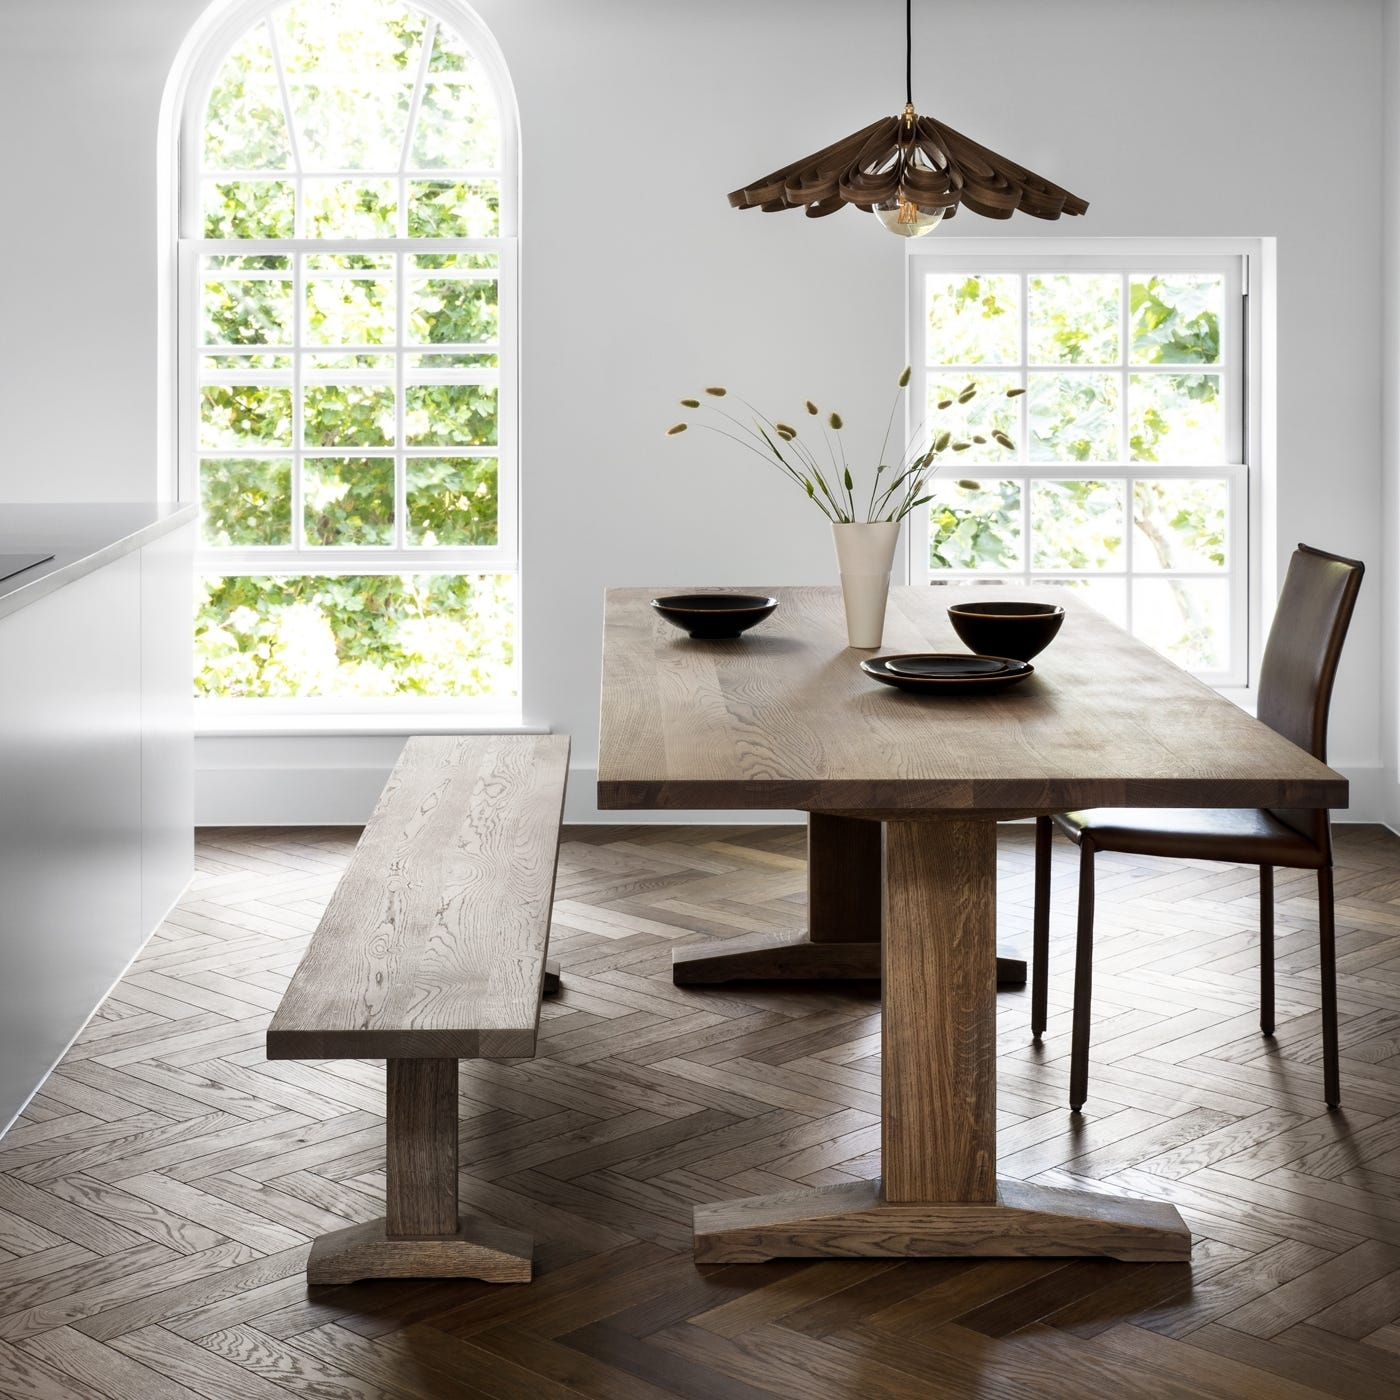 As shown in image: Lisbon dining table in smoked oak, Lisbon bench, Loveramics Studio tableware, Tom Raffield Quill pendant